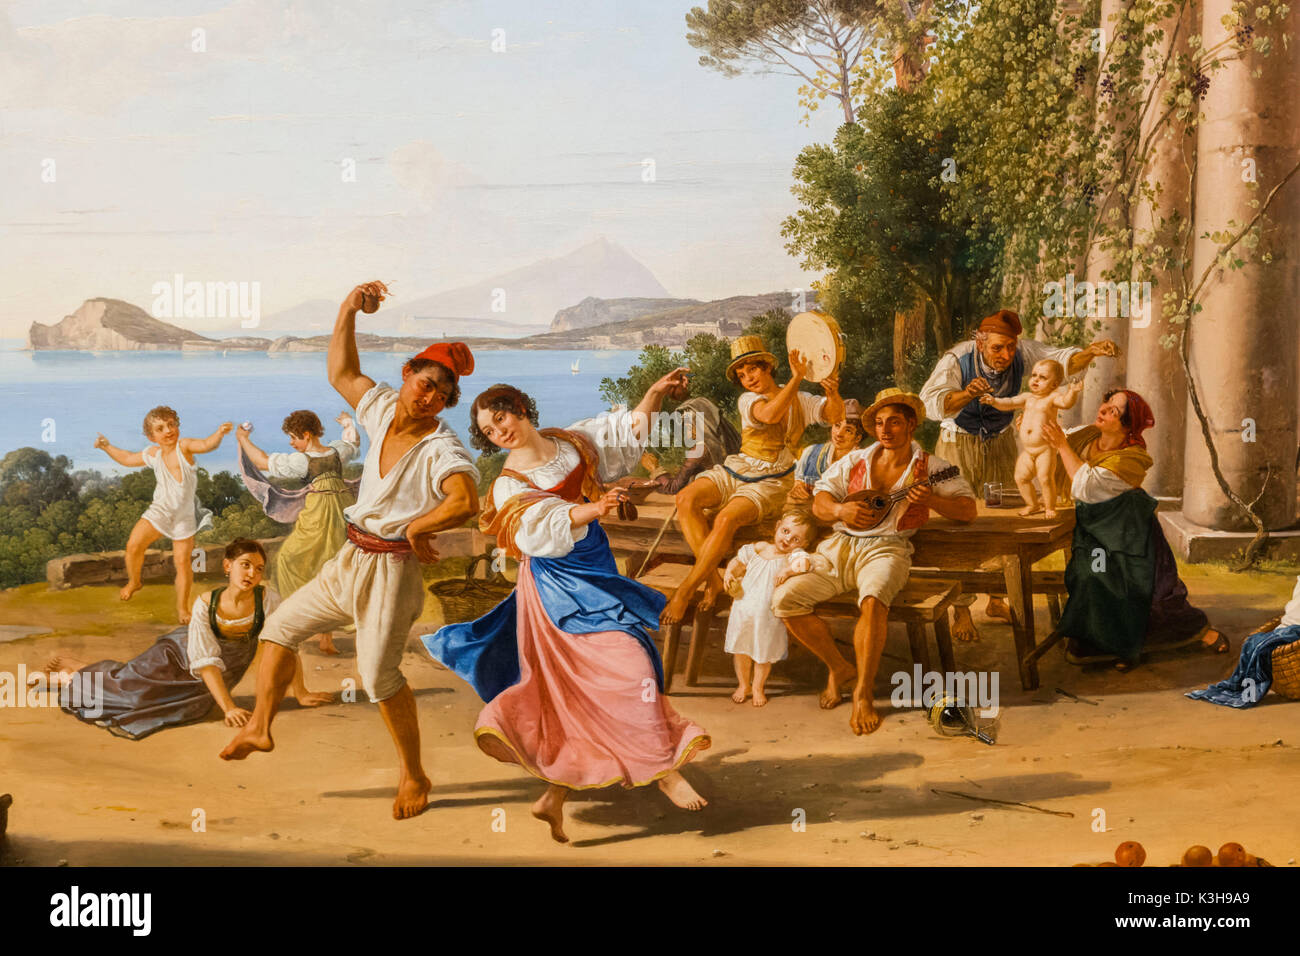 Germany, Bavaria, Munich, The New Pinakothek Museum (Neue Pinakothek), Painting titled 'Country Festival near Pozzuili' (Volksfest bei Pozzuoli) by Franz Ludwig Catel dated 1823 - Stock Image